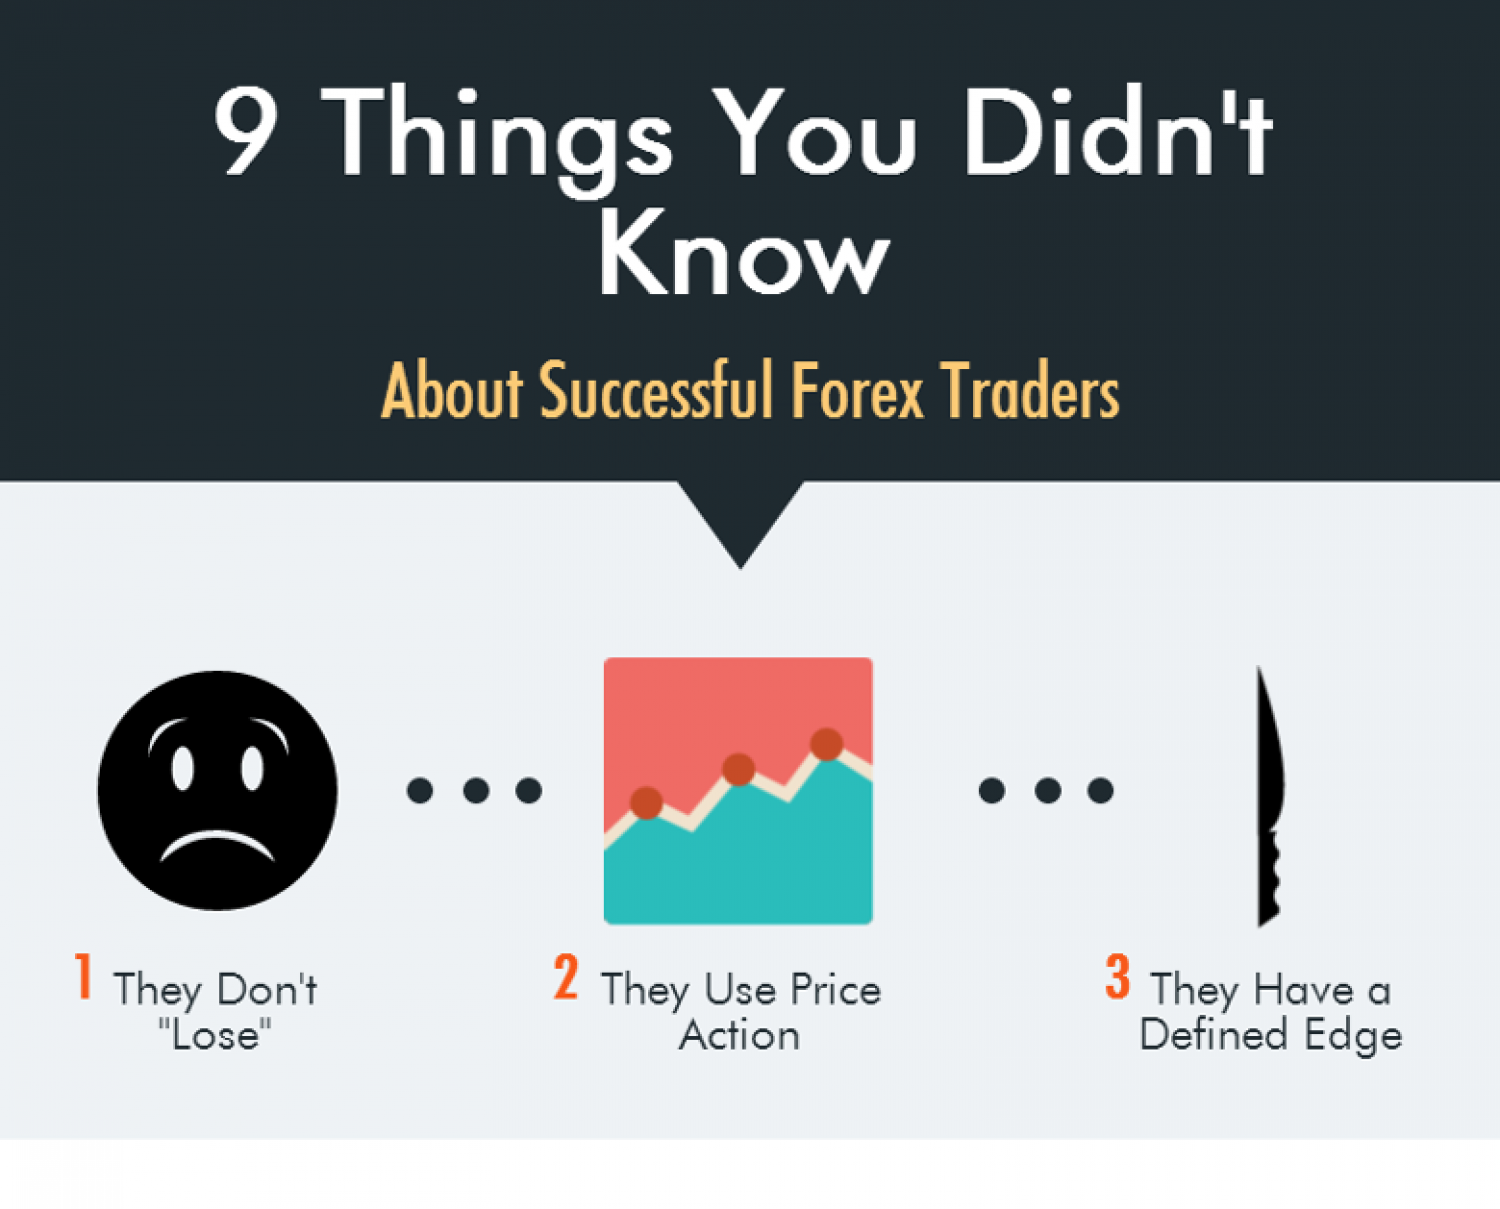 9 Things You Didn't Know About Successful Forex Traders Infographic